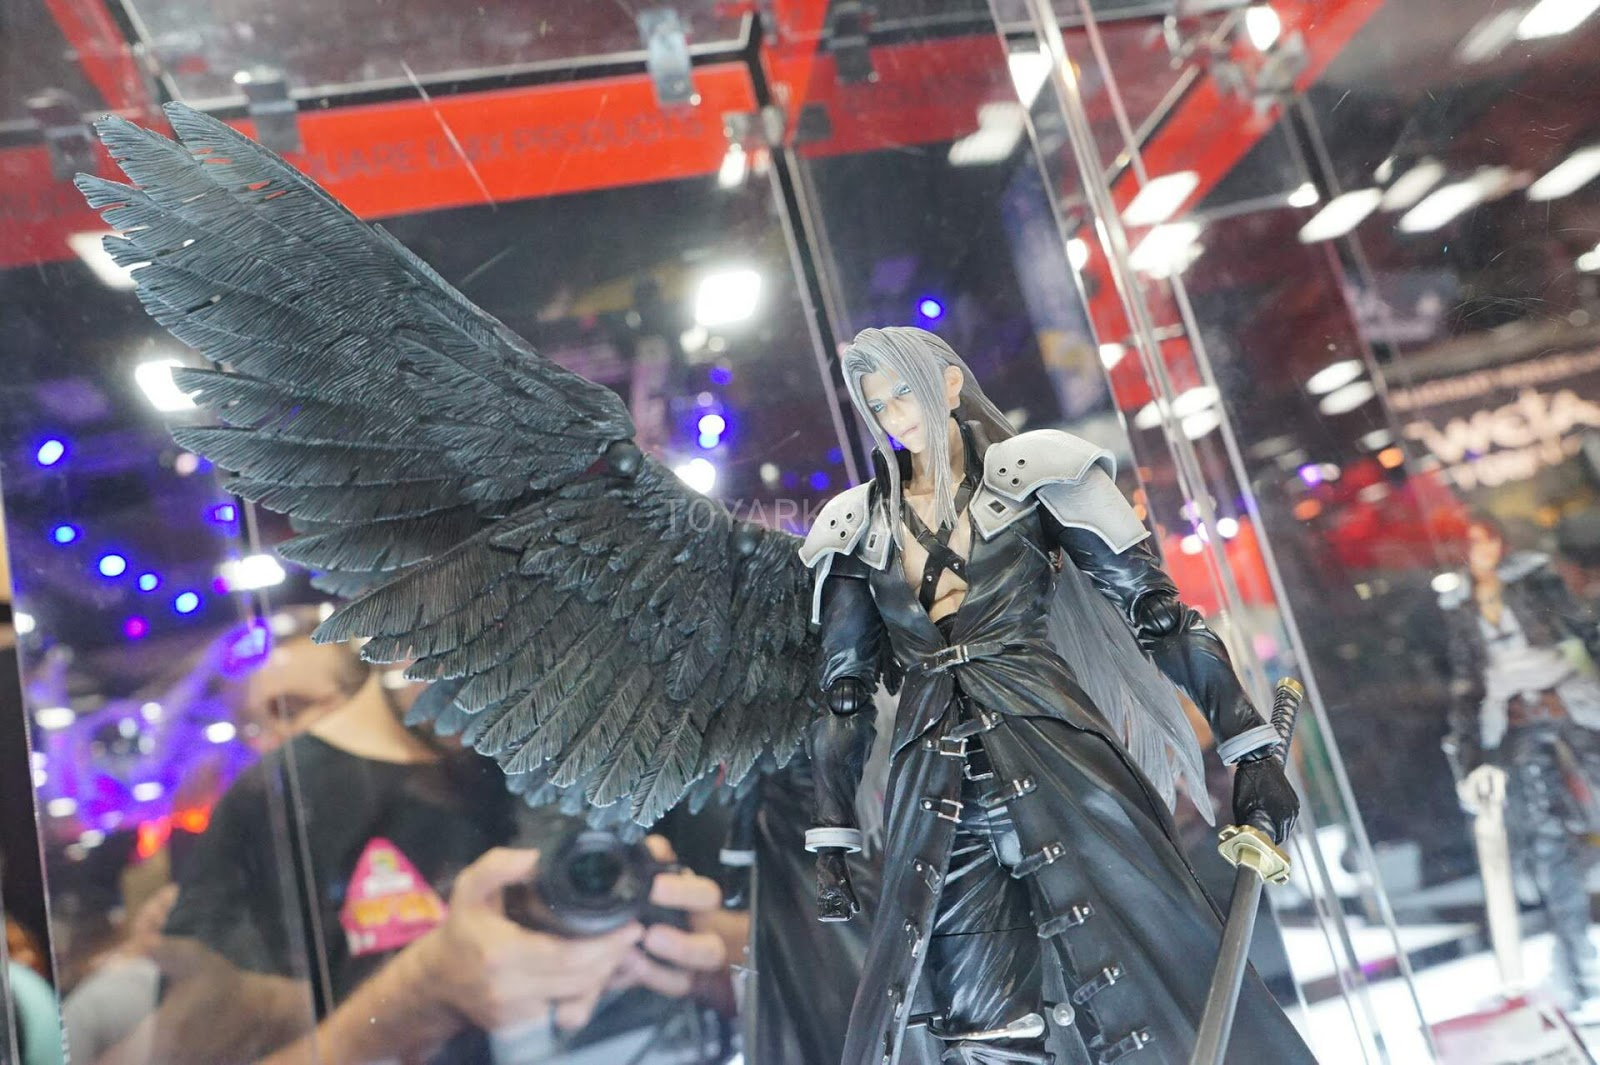 This Final Fantasy Vii Action Figure Ain T No Angel N4g